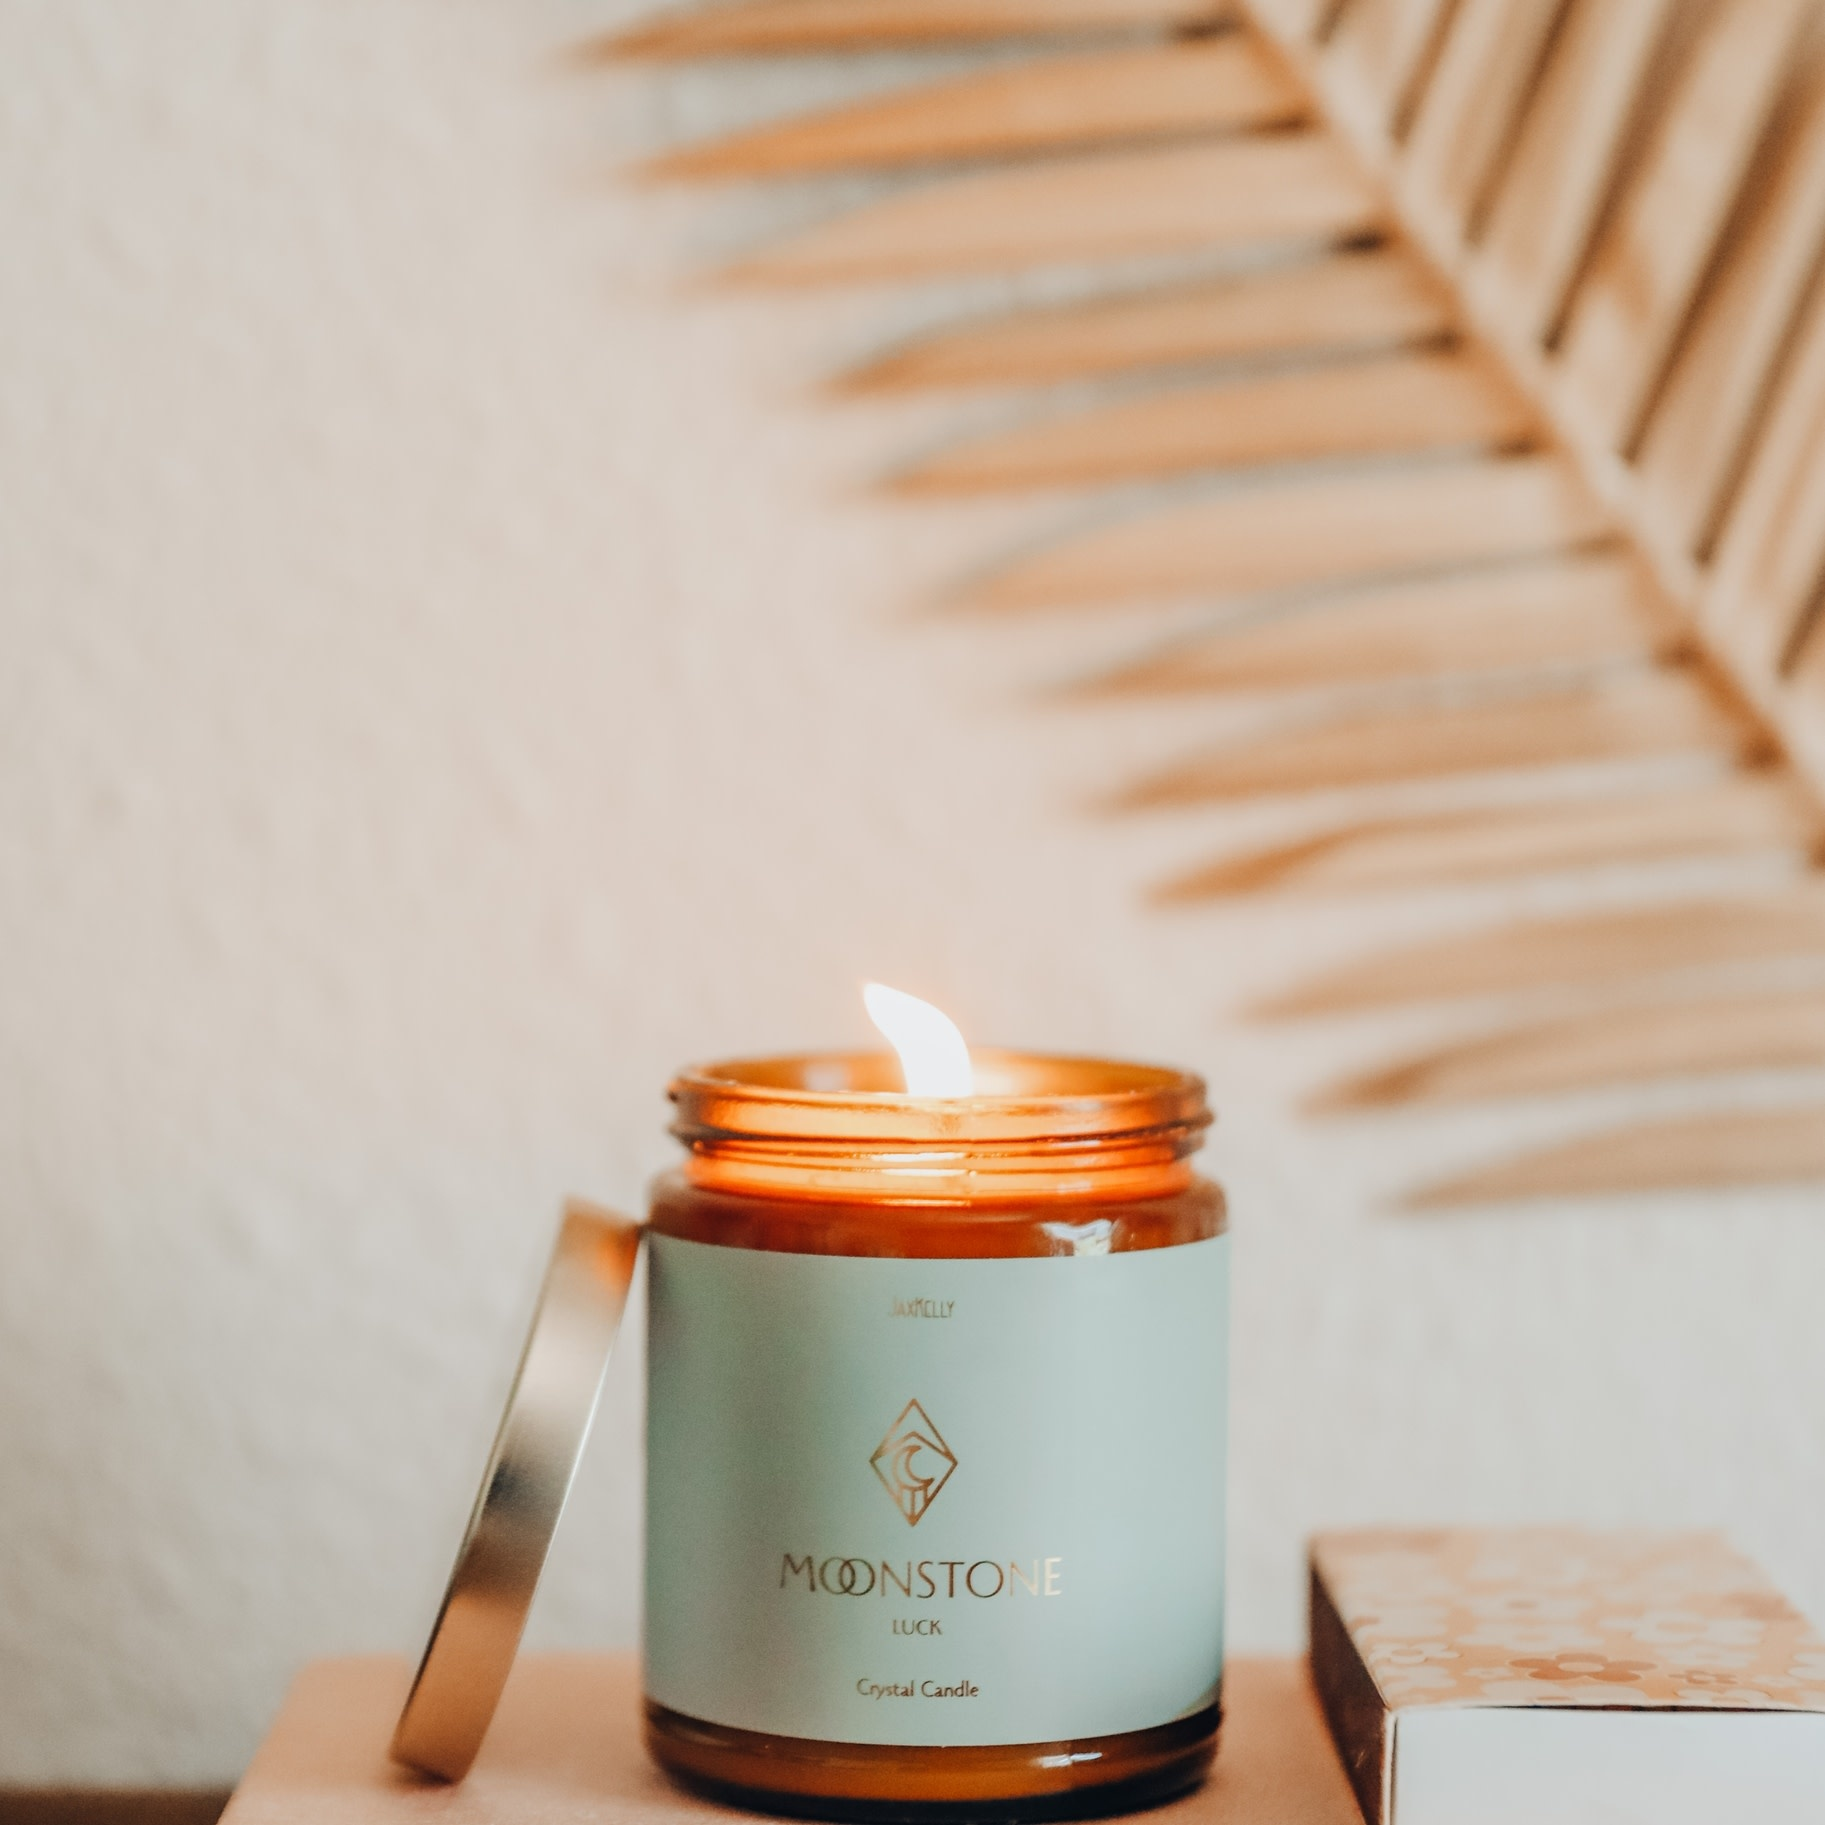 Moonstone Amber Crystal Candle